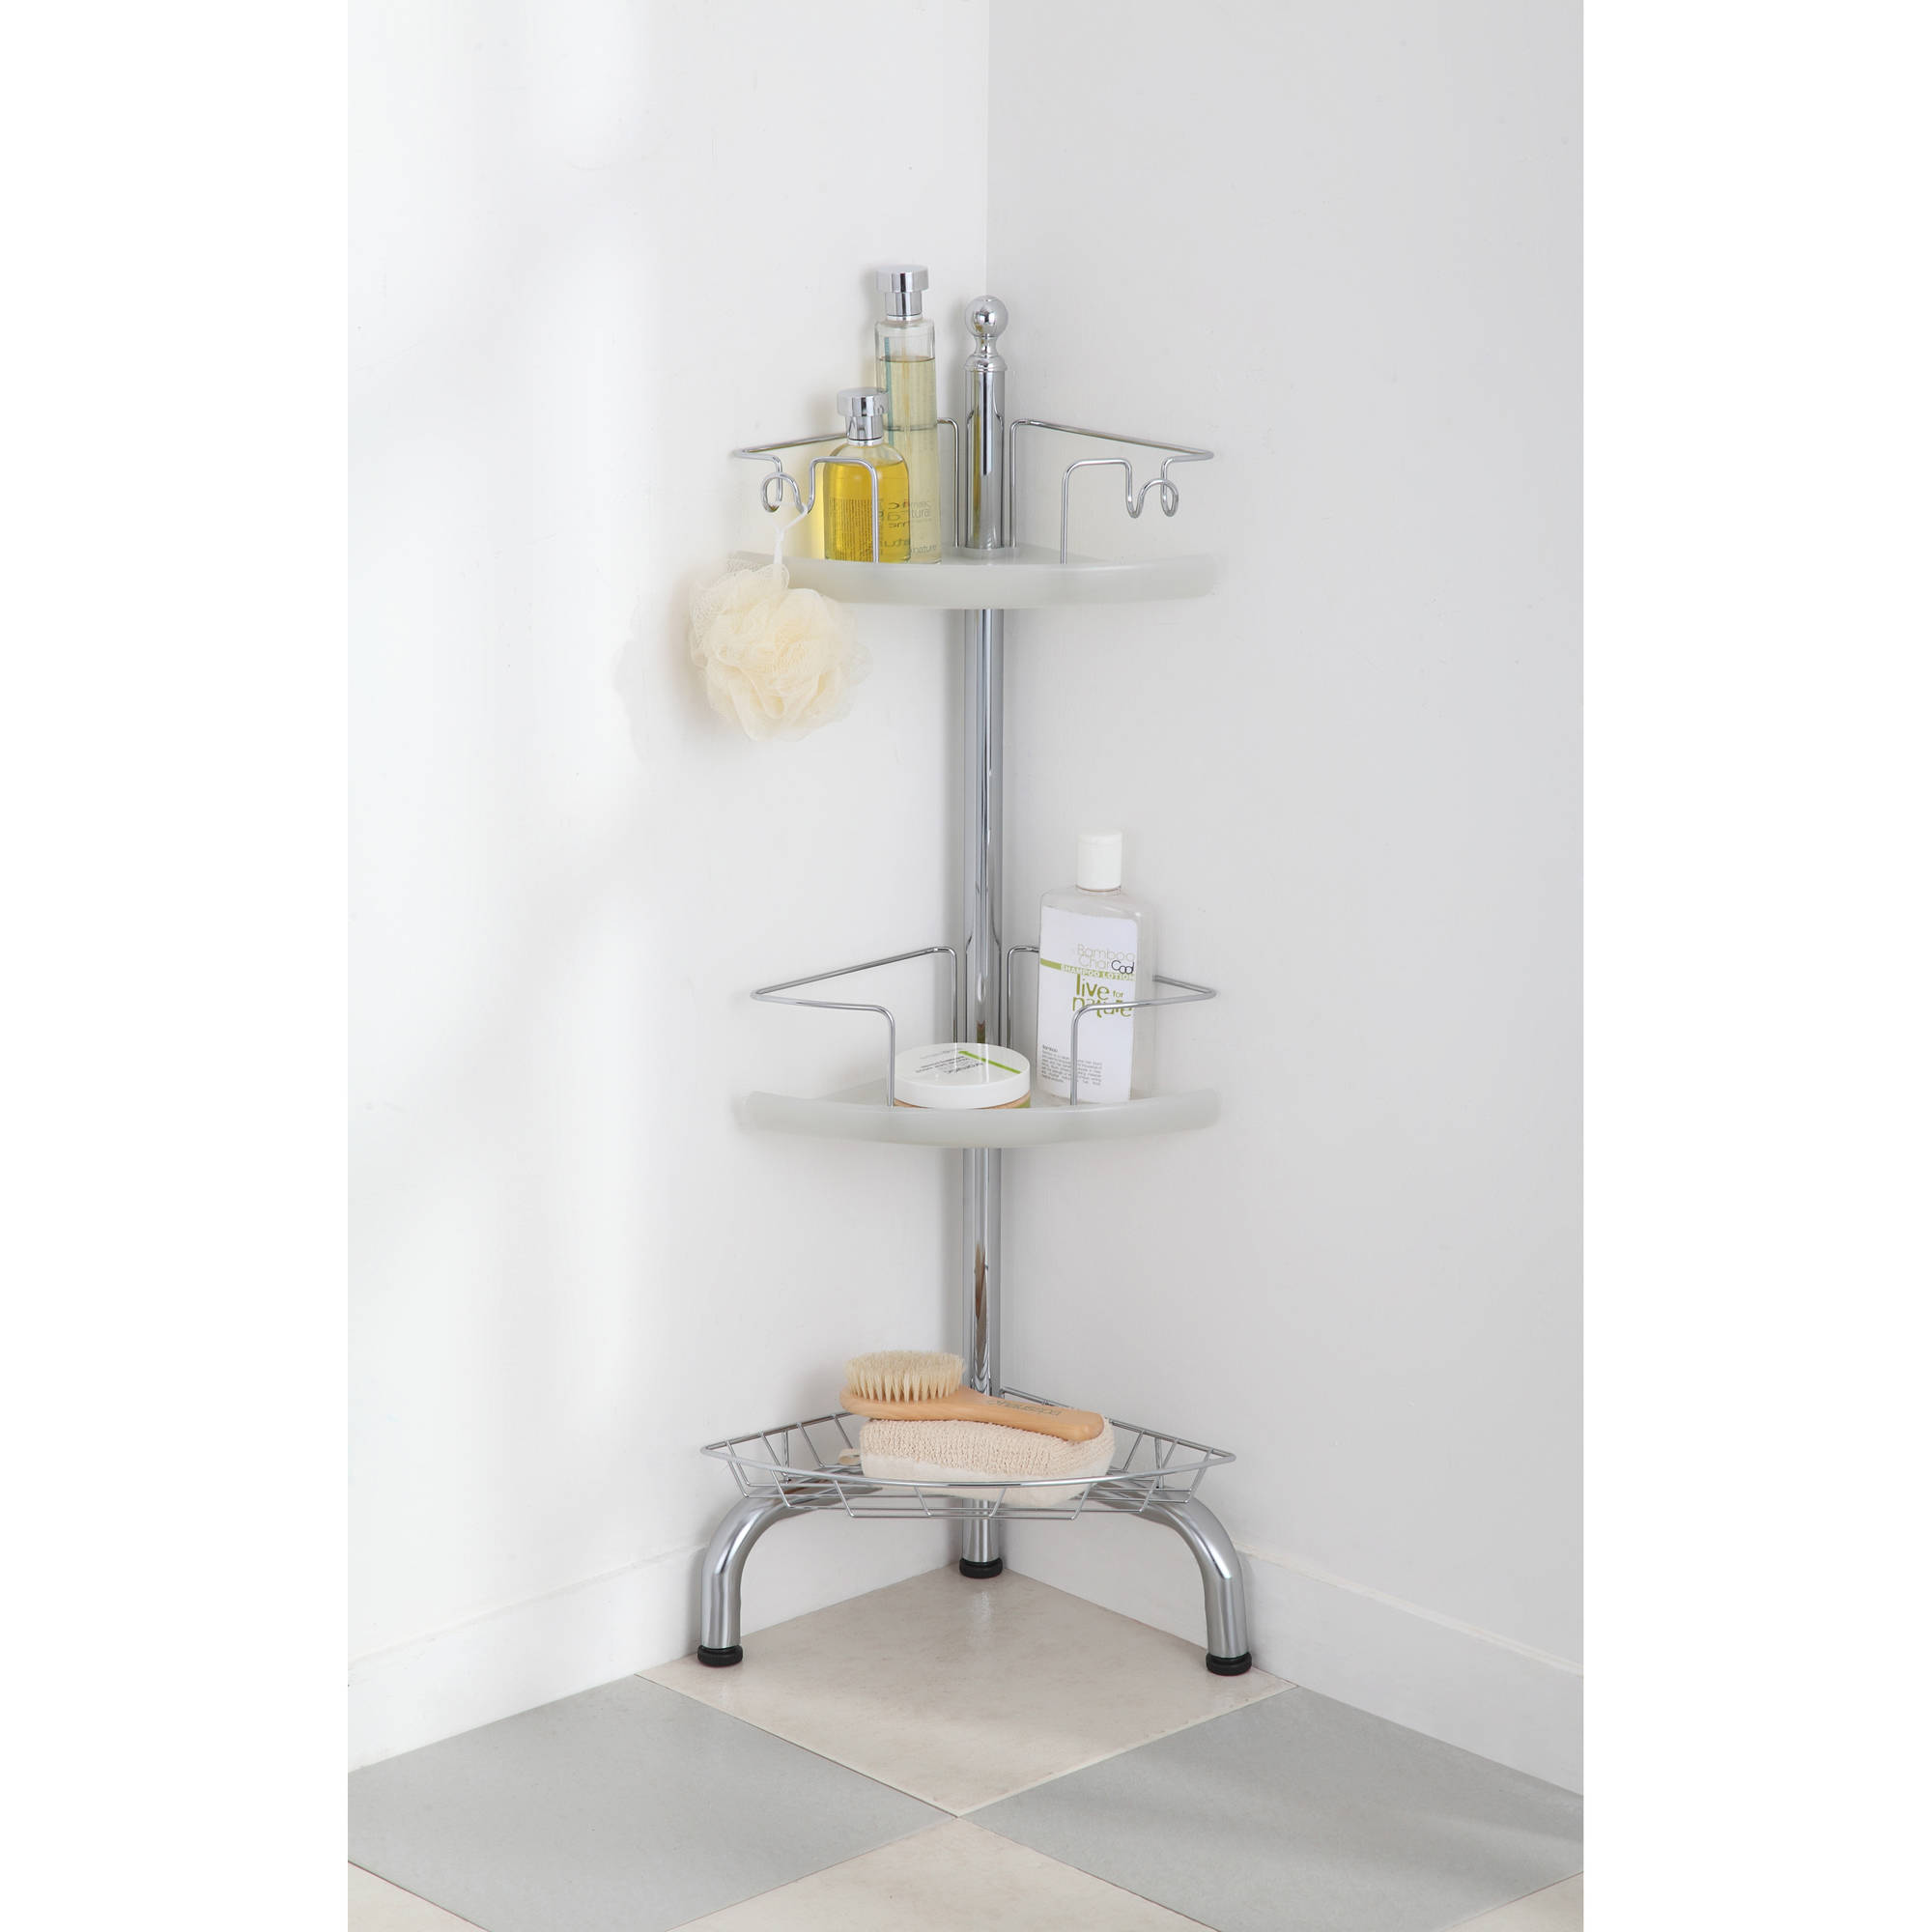 HomeZone 3-Tier Adjustable Corner Shower Caddy, Chrome - Walmart.com